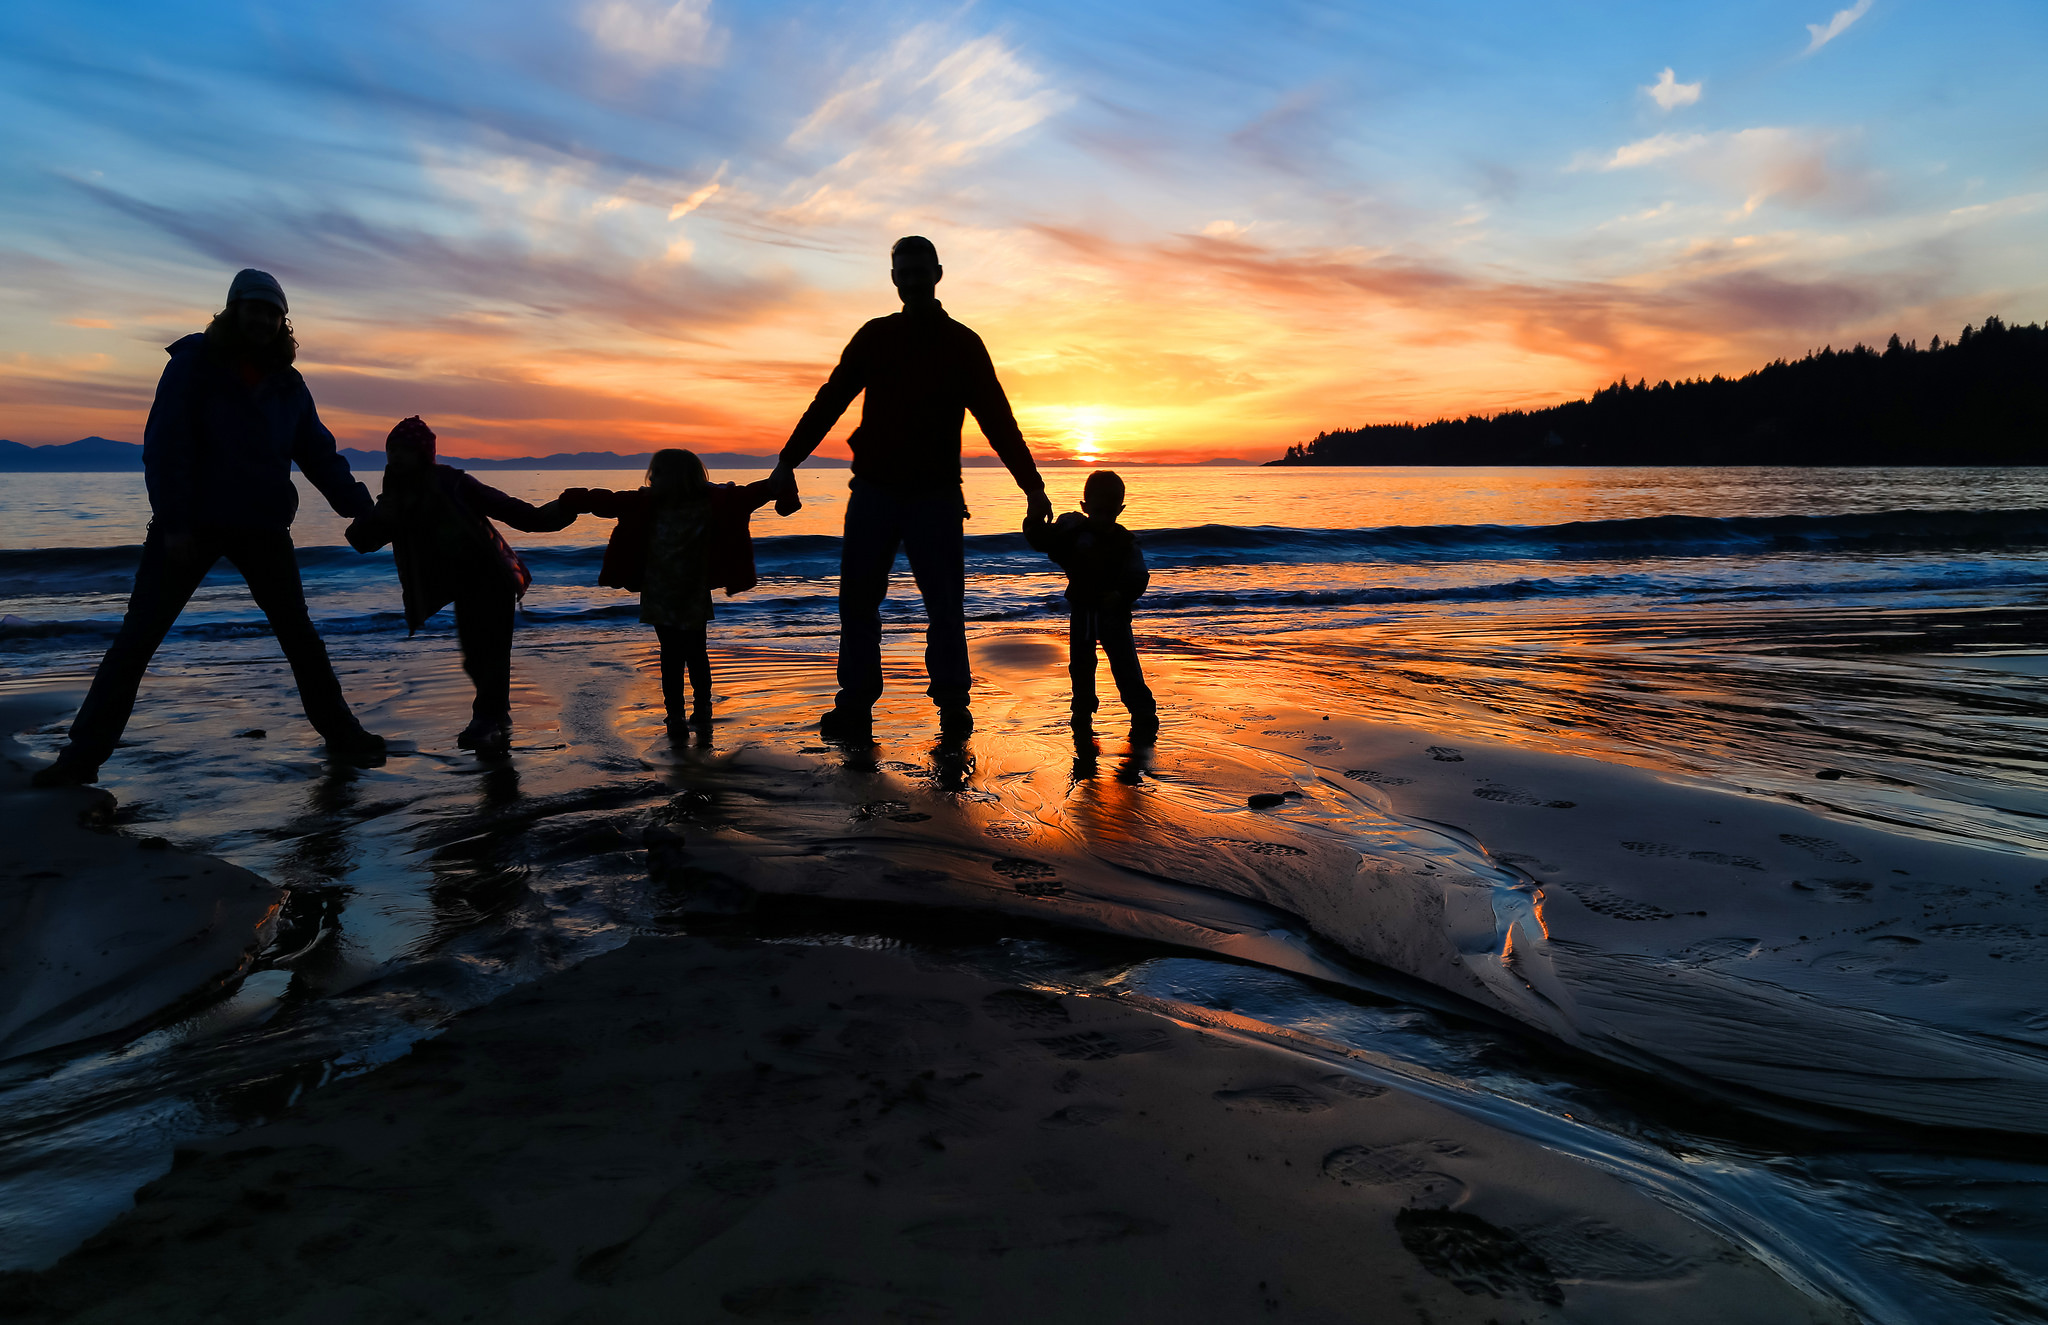 Family on the beach. Photo by Brian Koning.